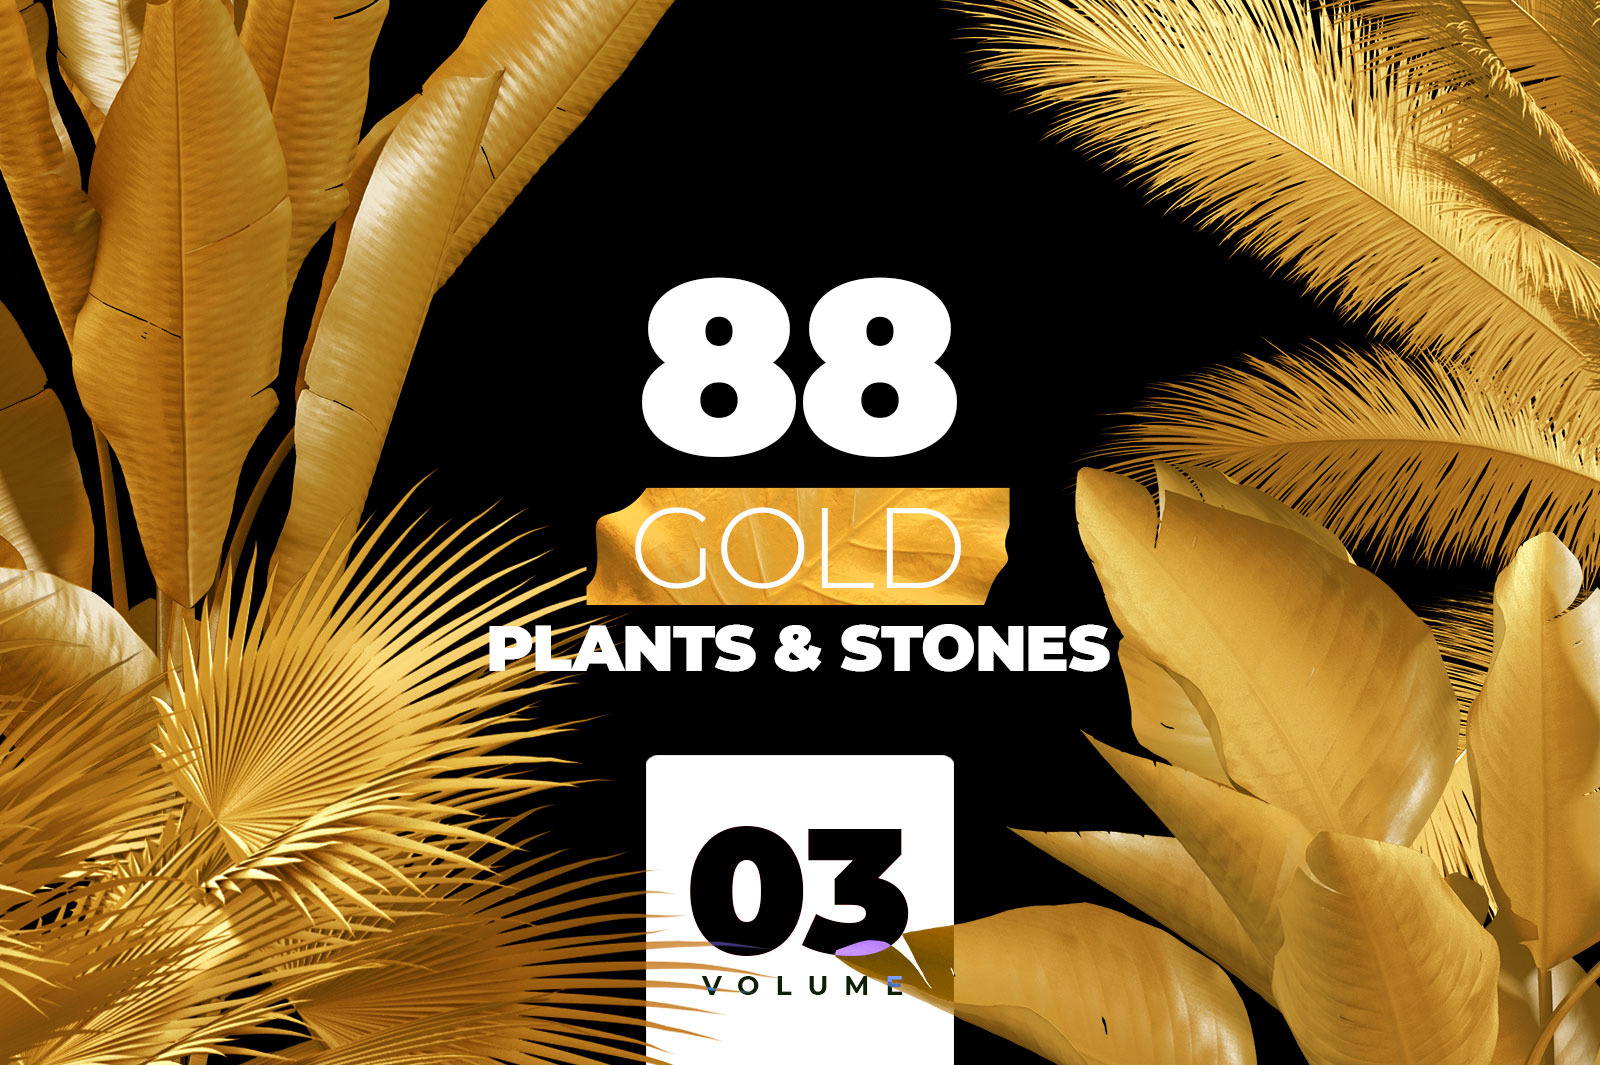 GOLD plants & stones collection #03